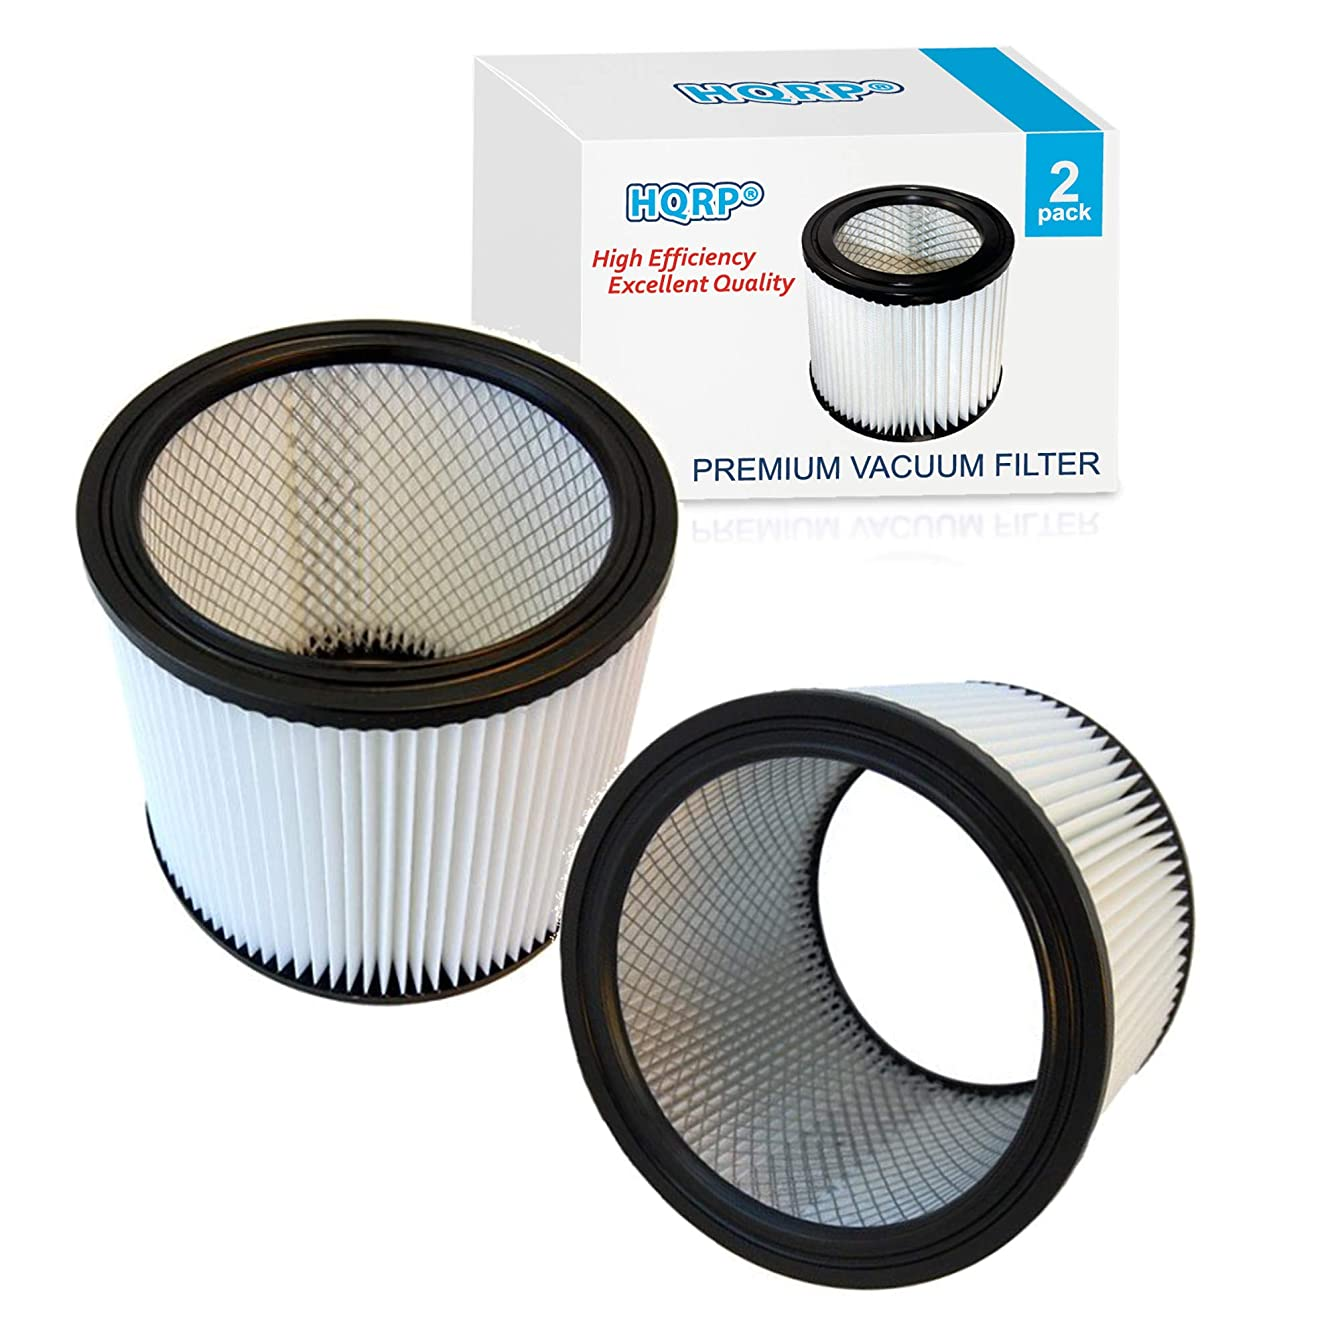 HQRP Cartridge Filter 2-Pack for Shop-Vac 90350 90304 90333 Replacement fits Wet/Dry Vacuum Cleaner